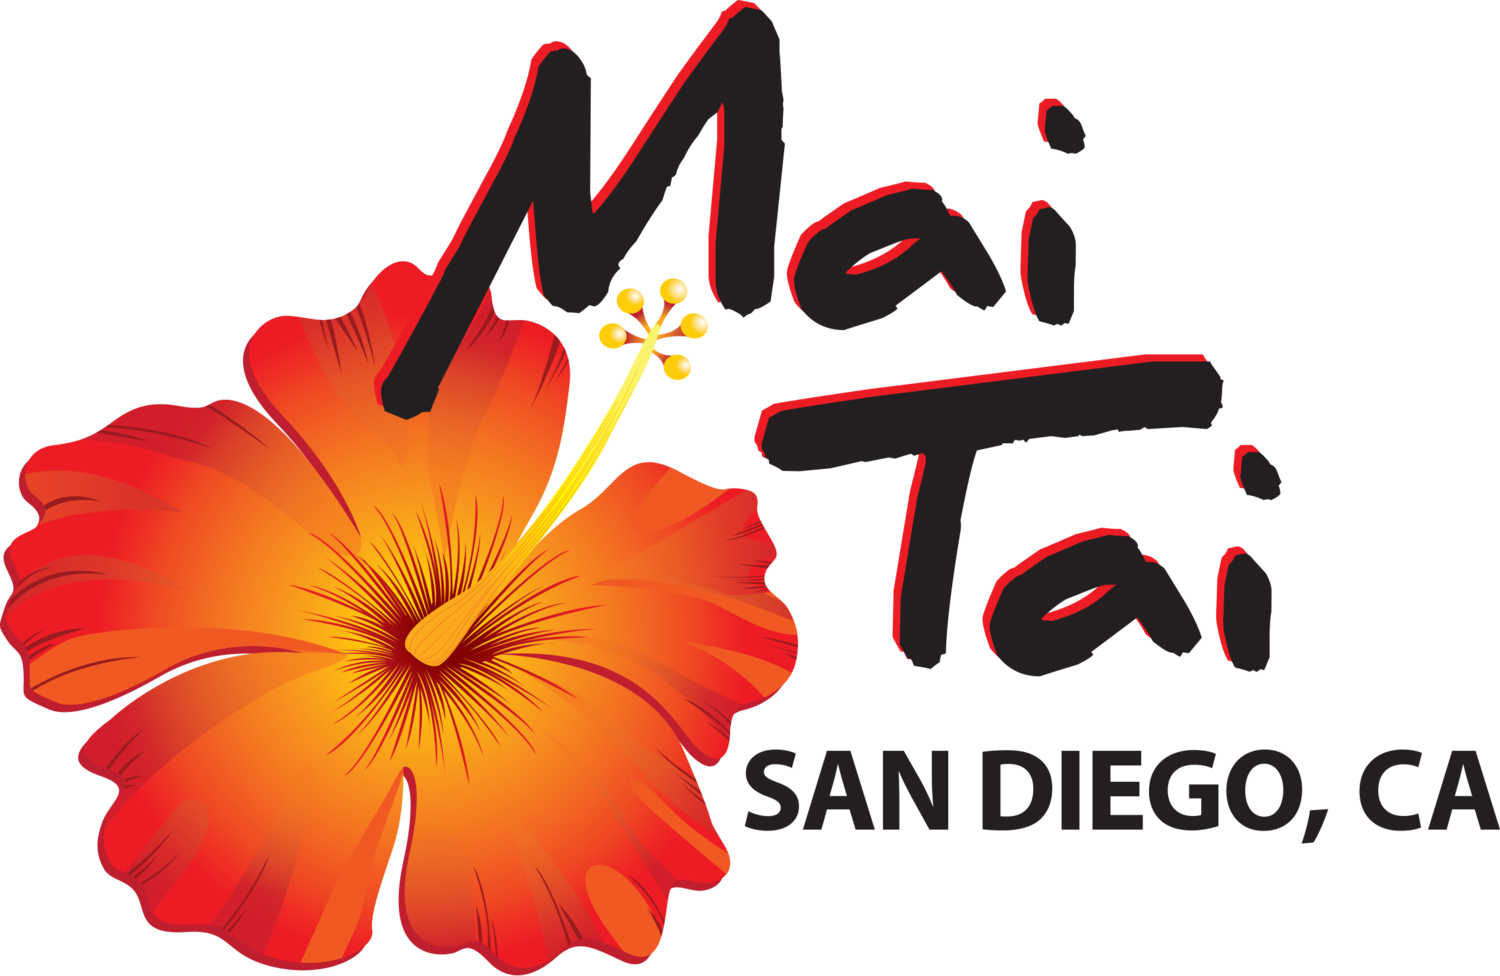 Mai Tai Yacht Charters San Diego | Boat Party